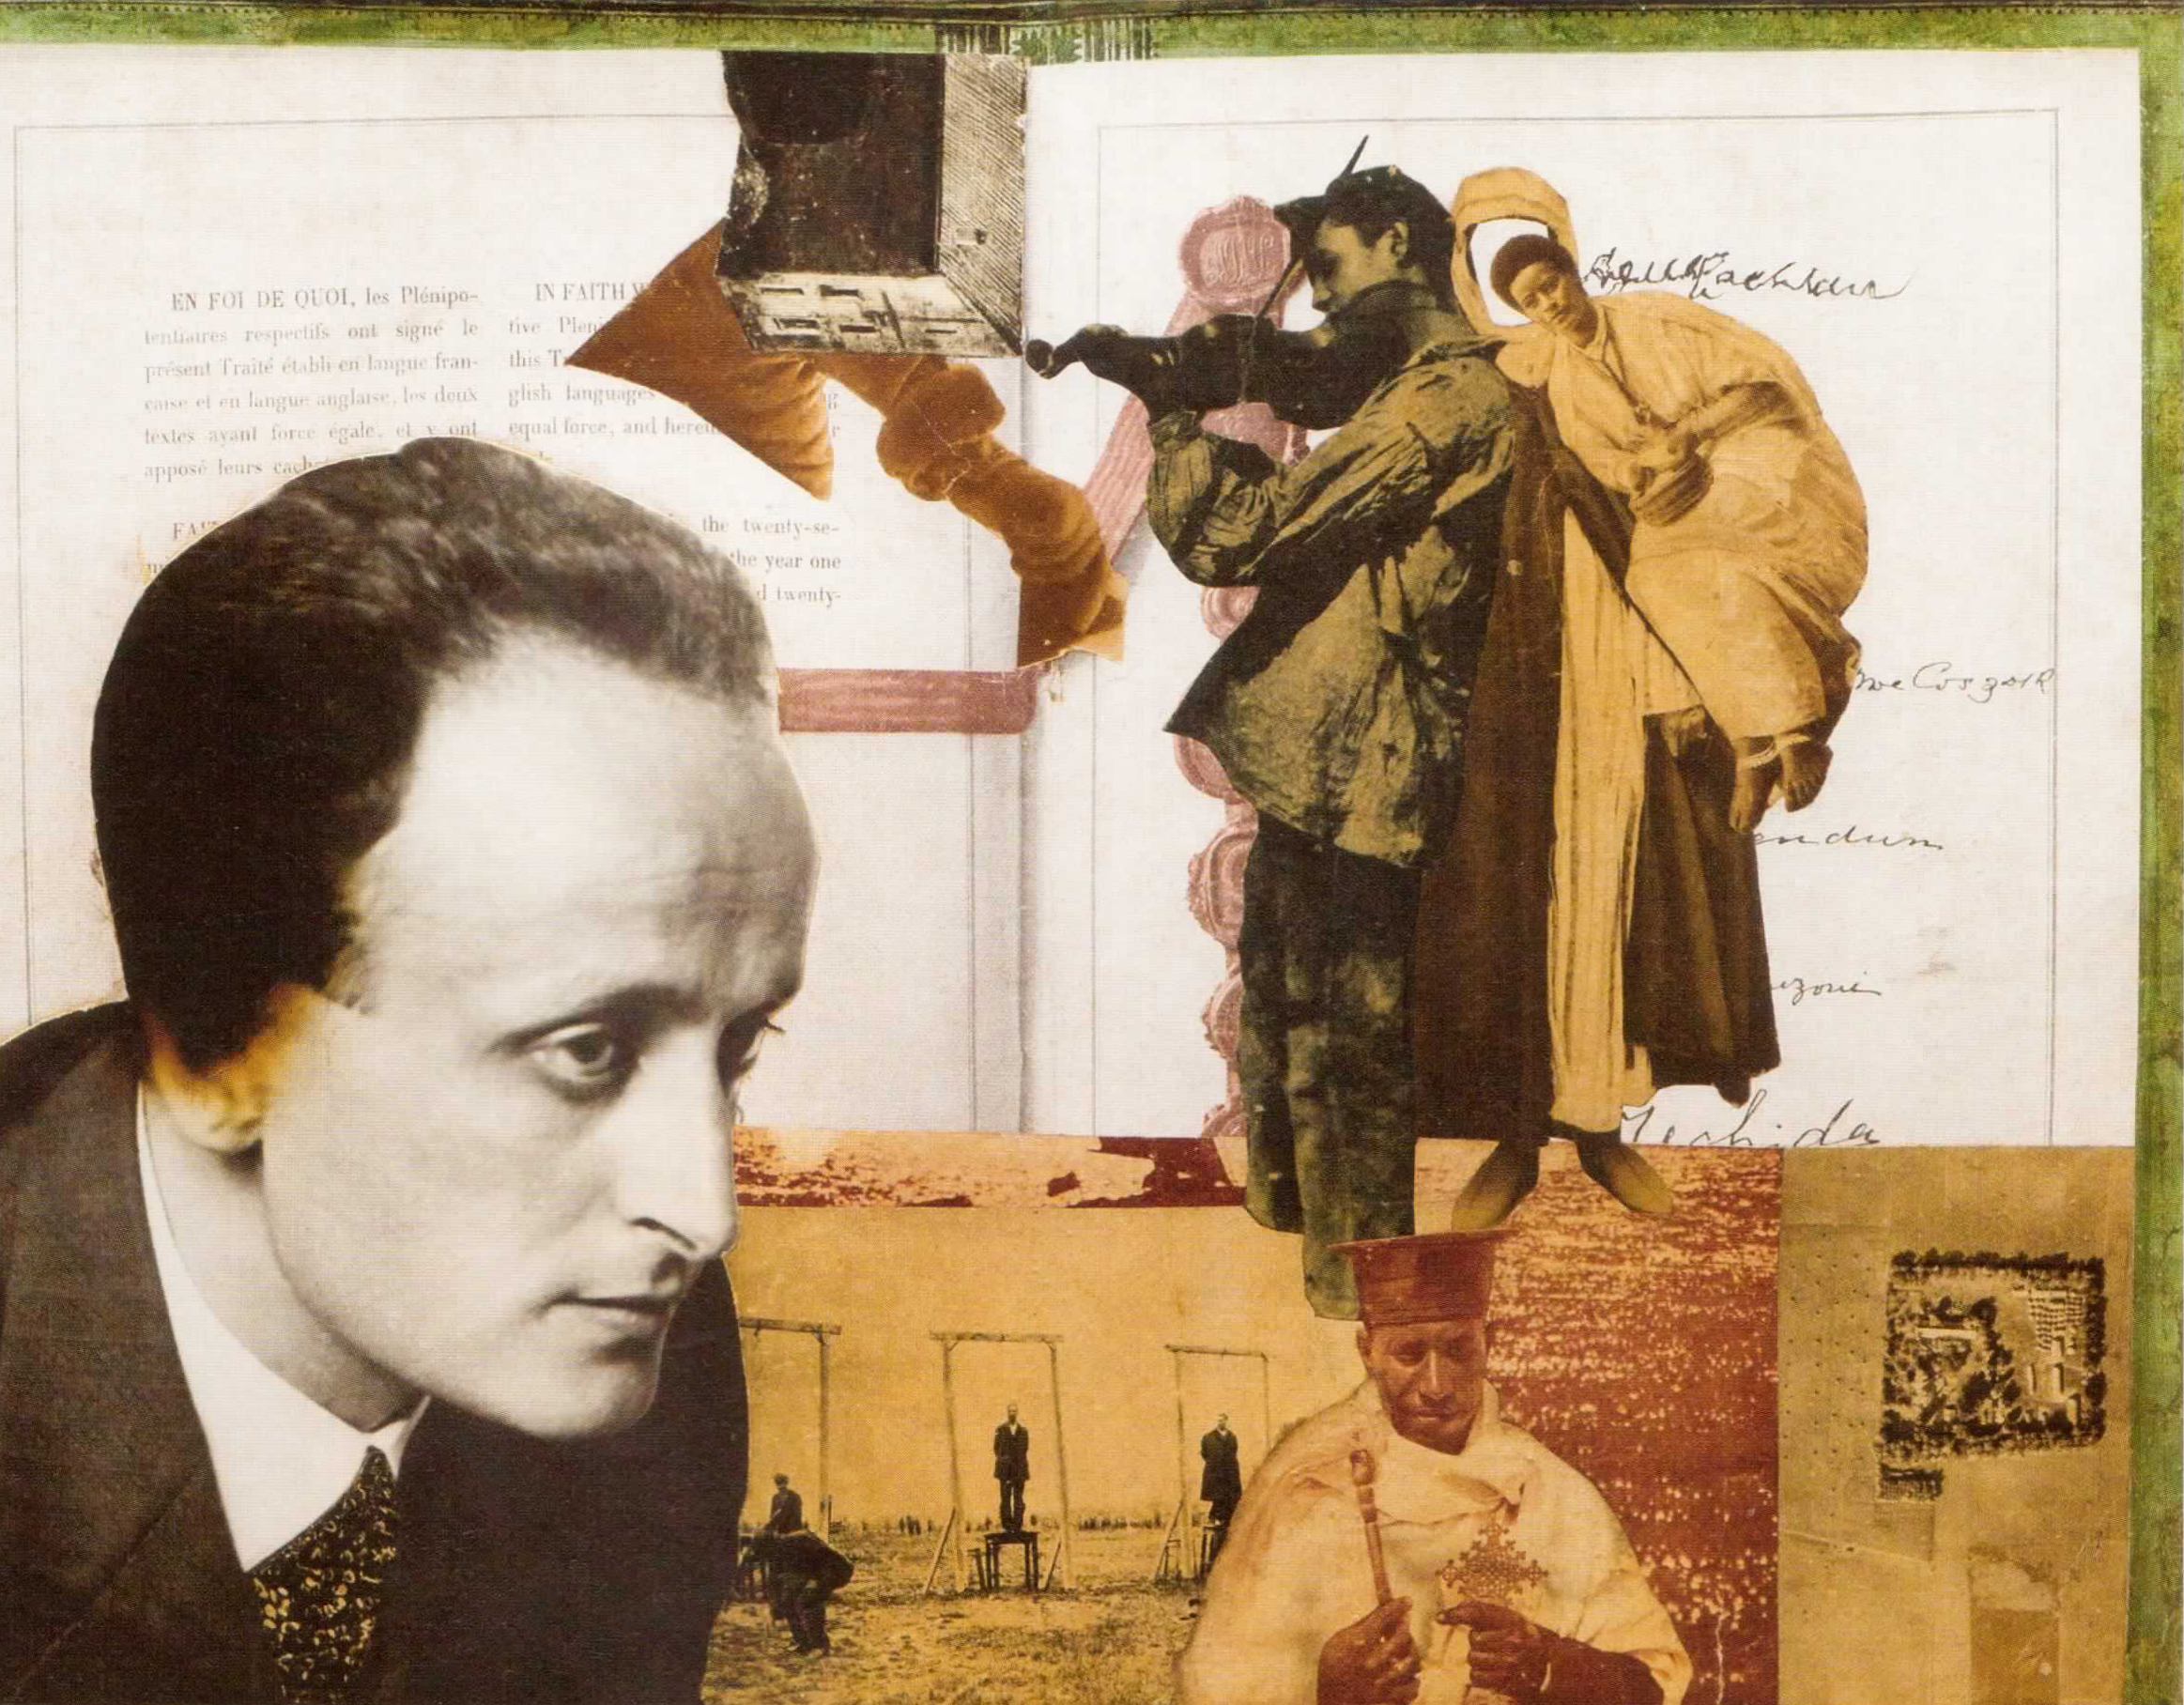 Lajos Vajda  (1908–1941): Montage with the Portrait of Lajos Szabó, 1930-33, pastel and photocollage on cardboard, 49.6 cm x 54.6 cm, private collection